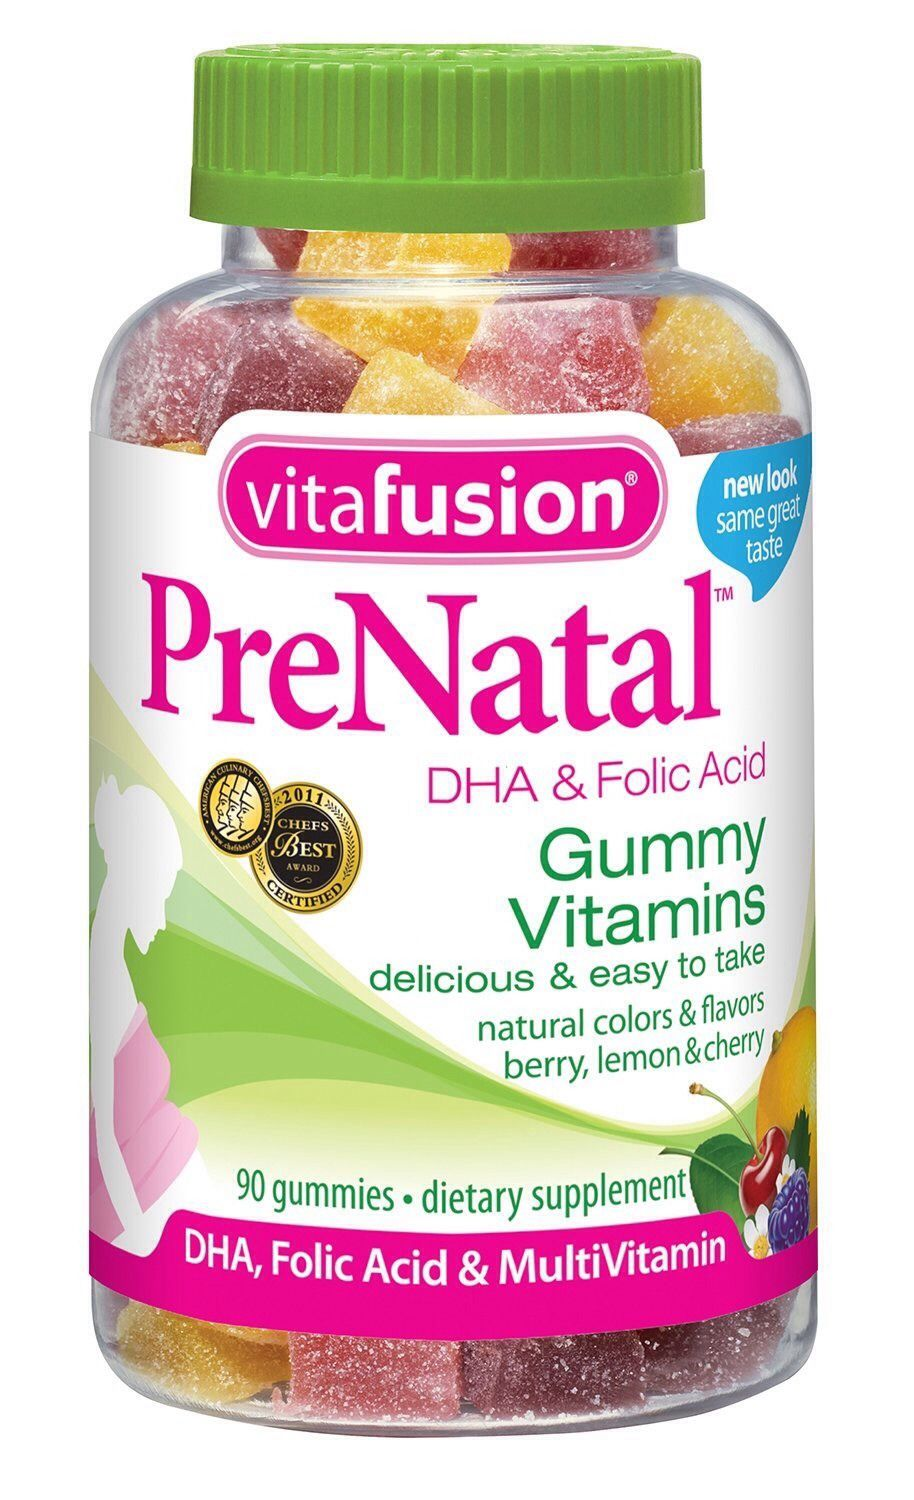 Take Prenatal Vitamins Even If Your Not Pregnant To Promote Hair